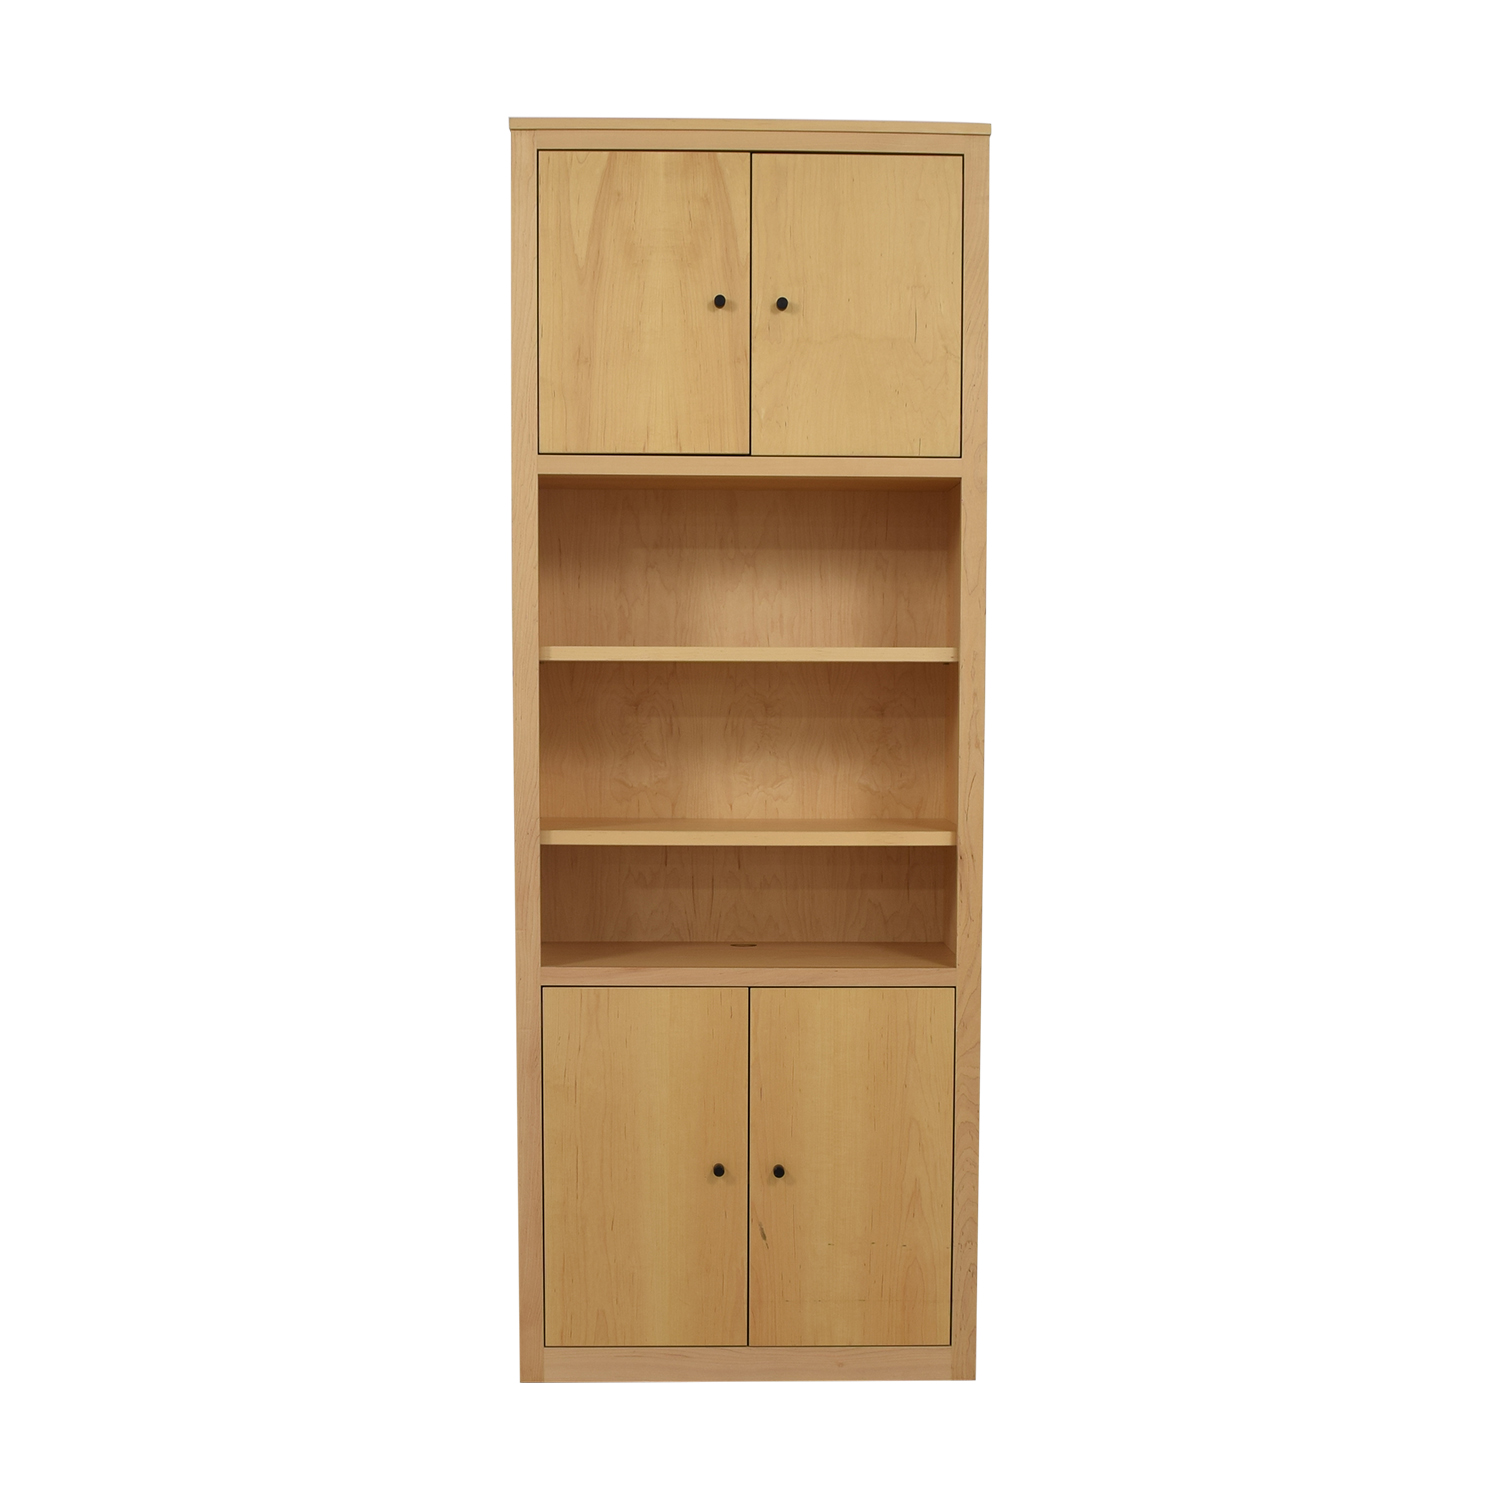 Room & Board Woodwind Bookcase with Doors sale